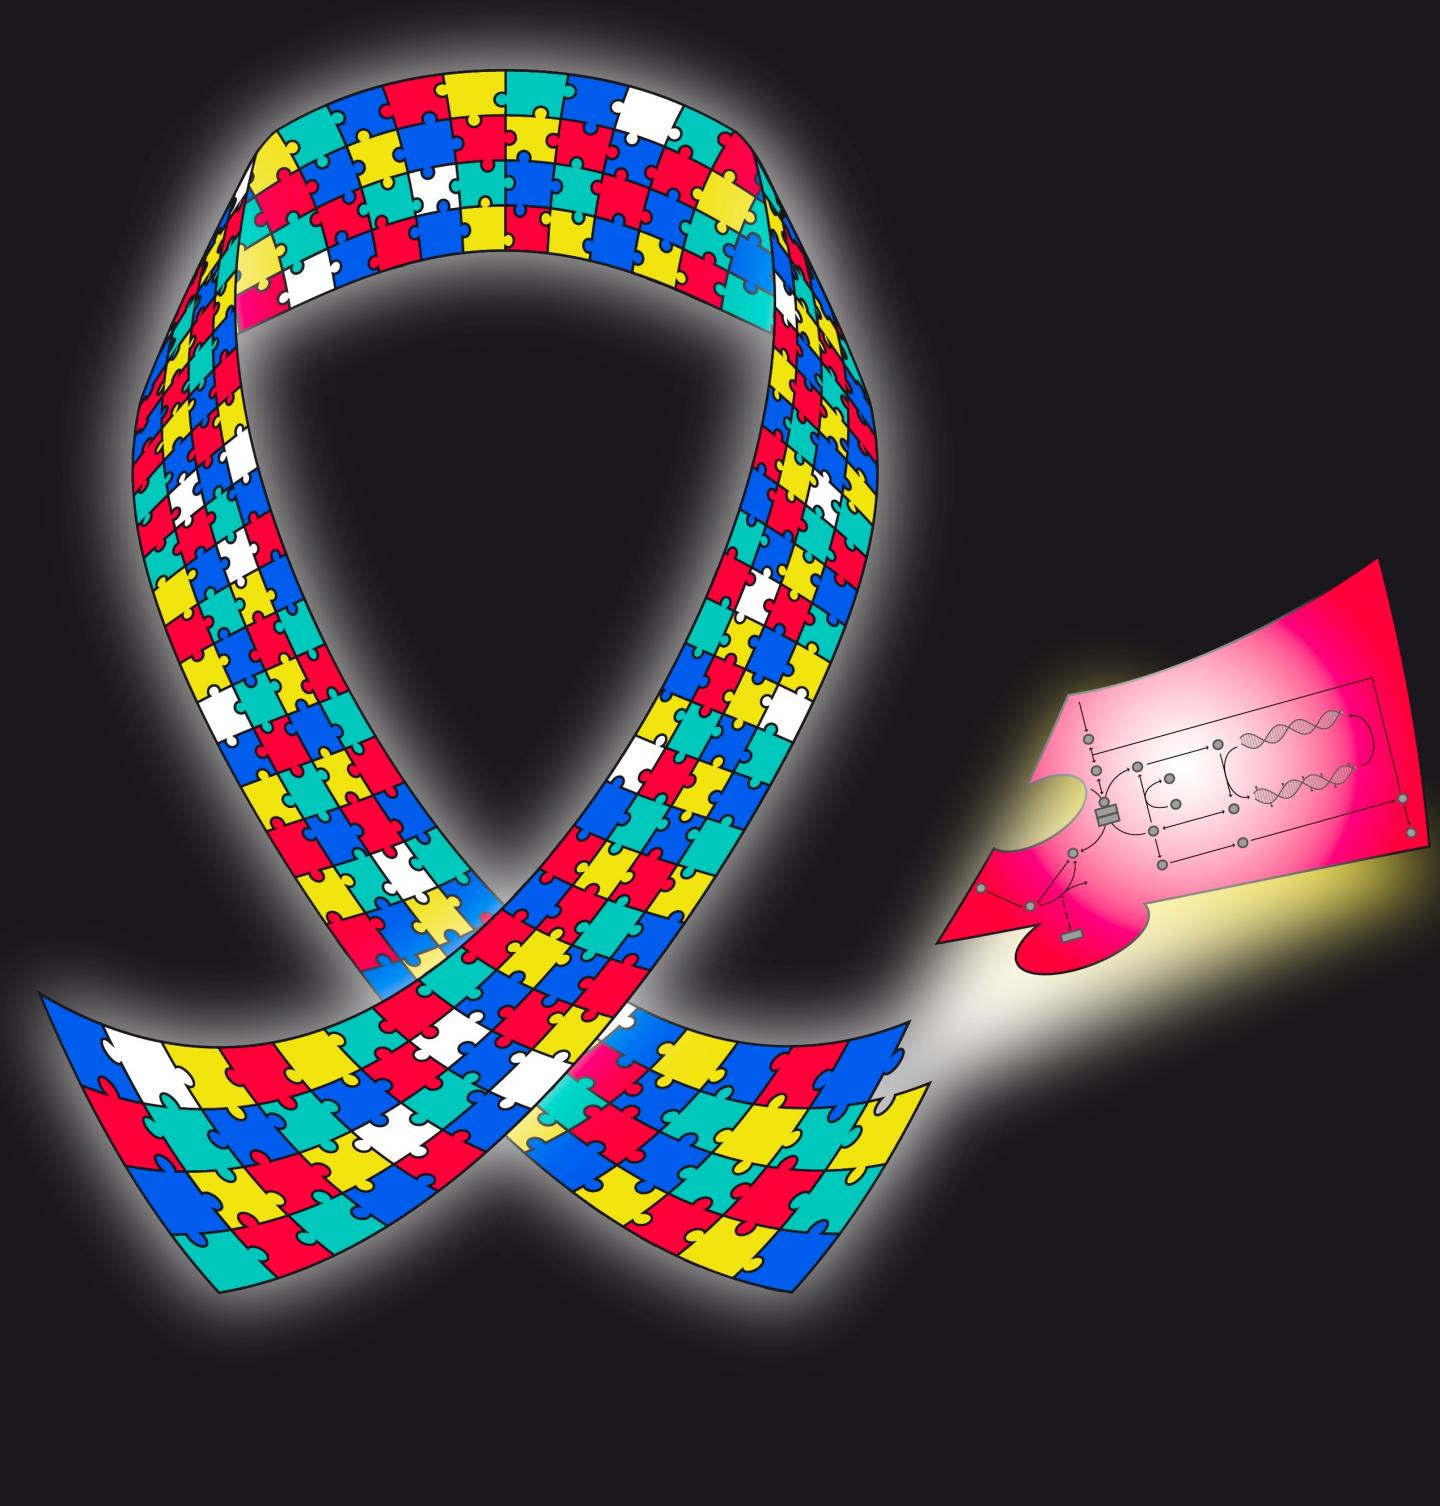 The autism awareness ribbon symbolizes the diverse experiences of people and families living with ASD. Here, it also represents the various genetic and environmental effects on the pathophysiology of ASD. The white pieces represent currently unknown effects. However, the red piece illustrating folate-dependent one-carbon metabolism and transsulfuration contributes important information to our knowledge of ASD. [Daniel P. Howsmon/CCBY]